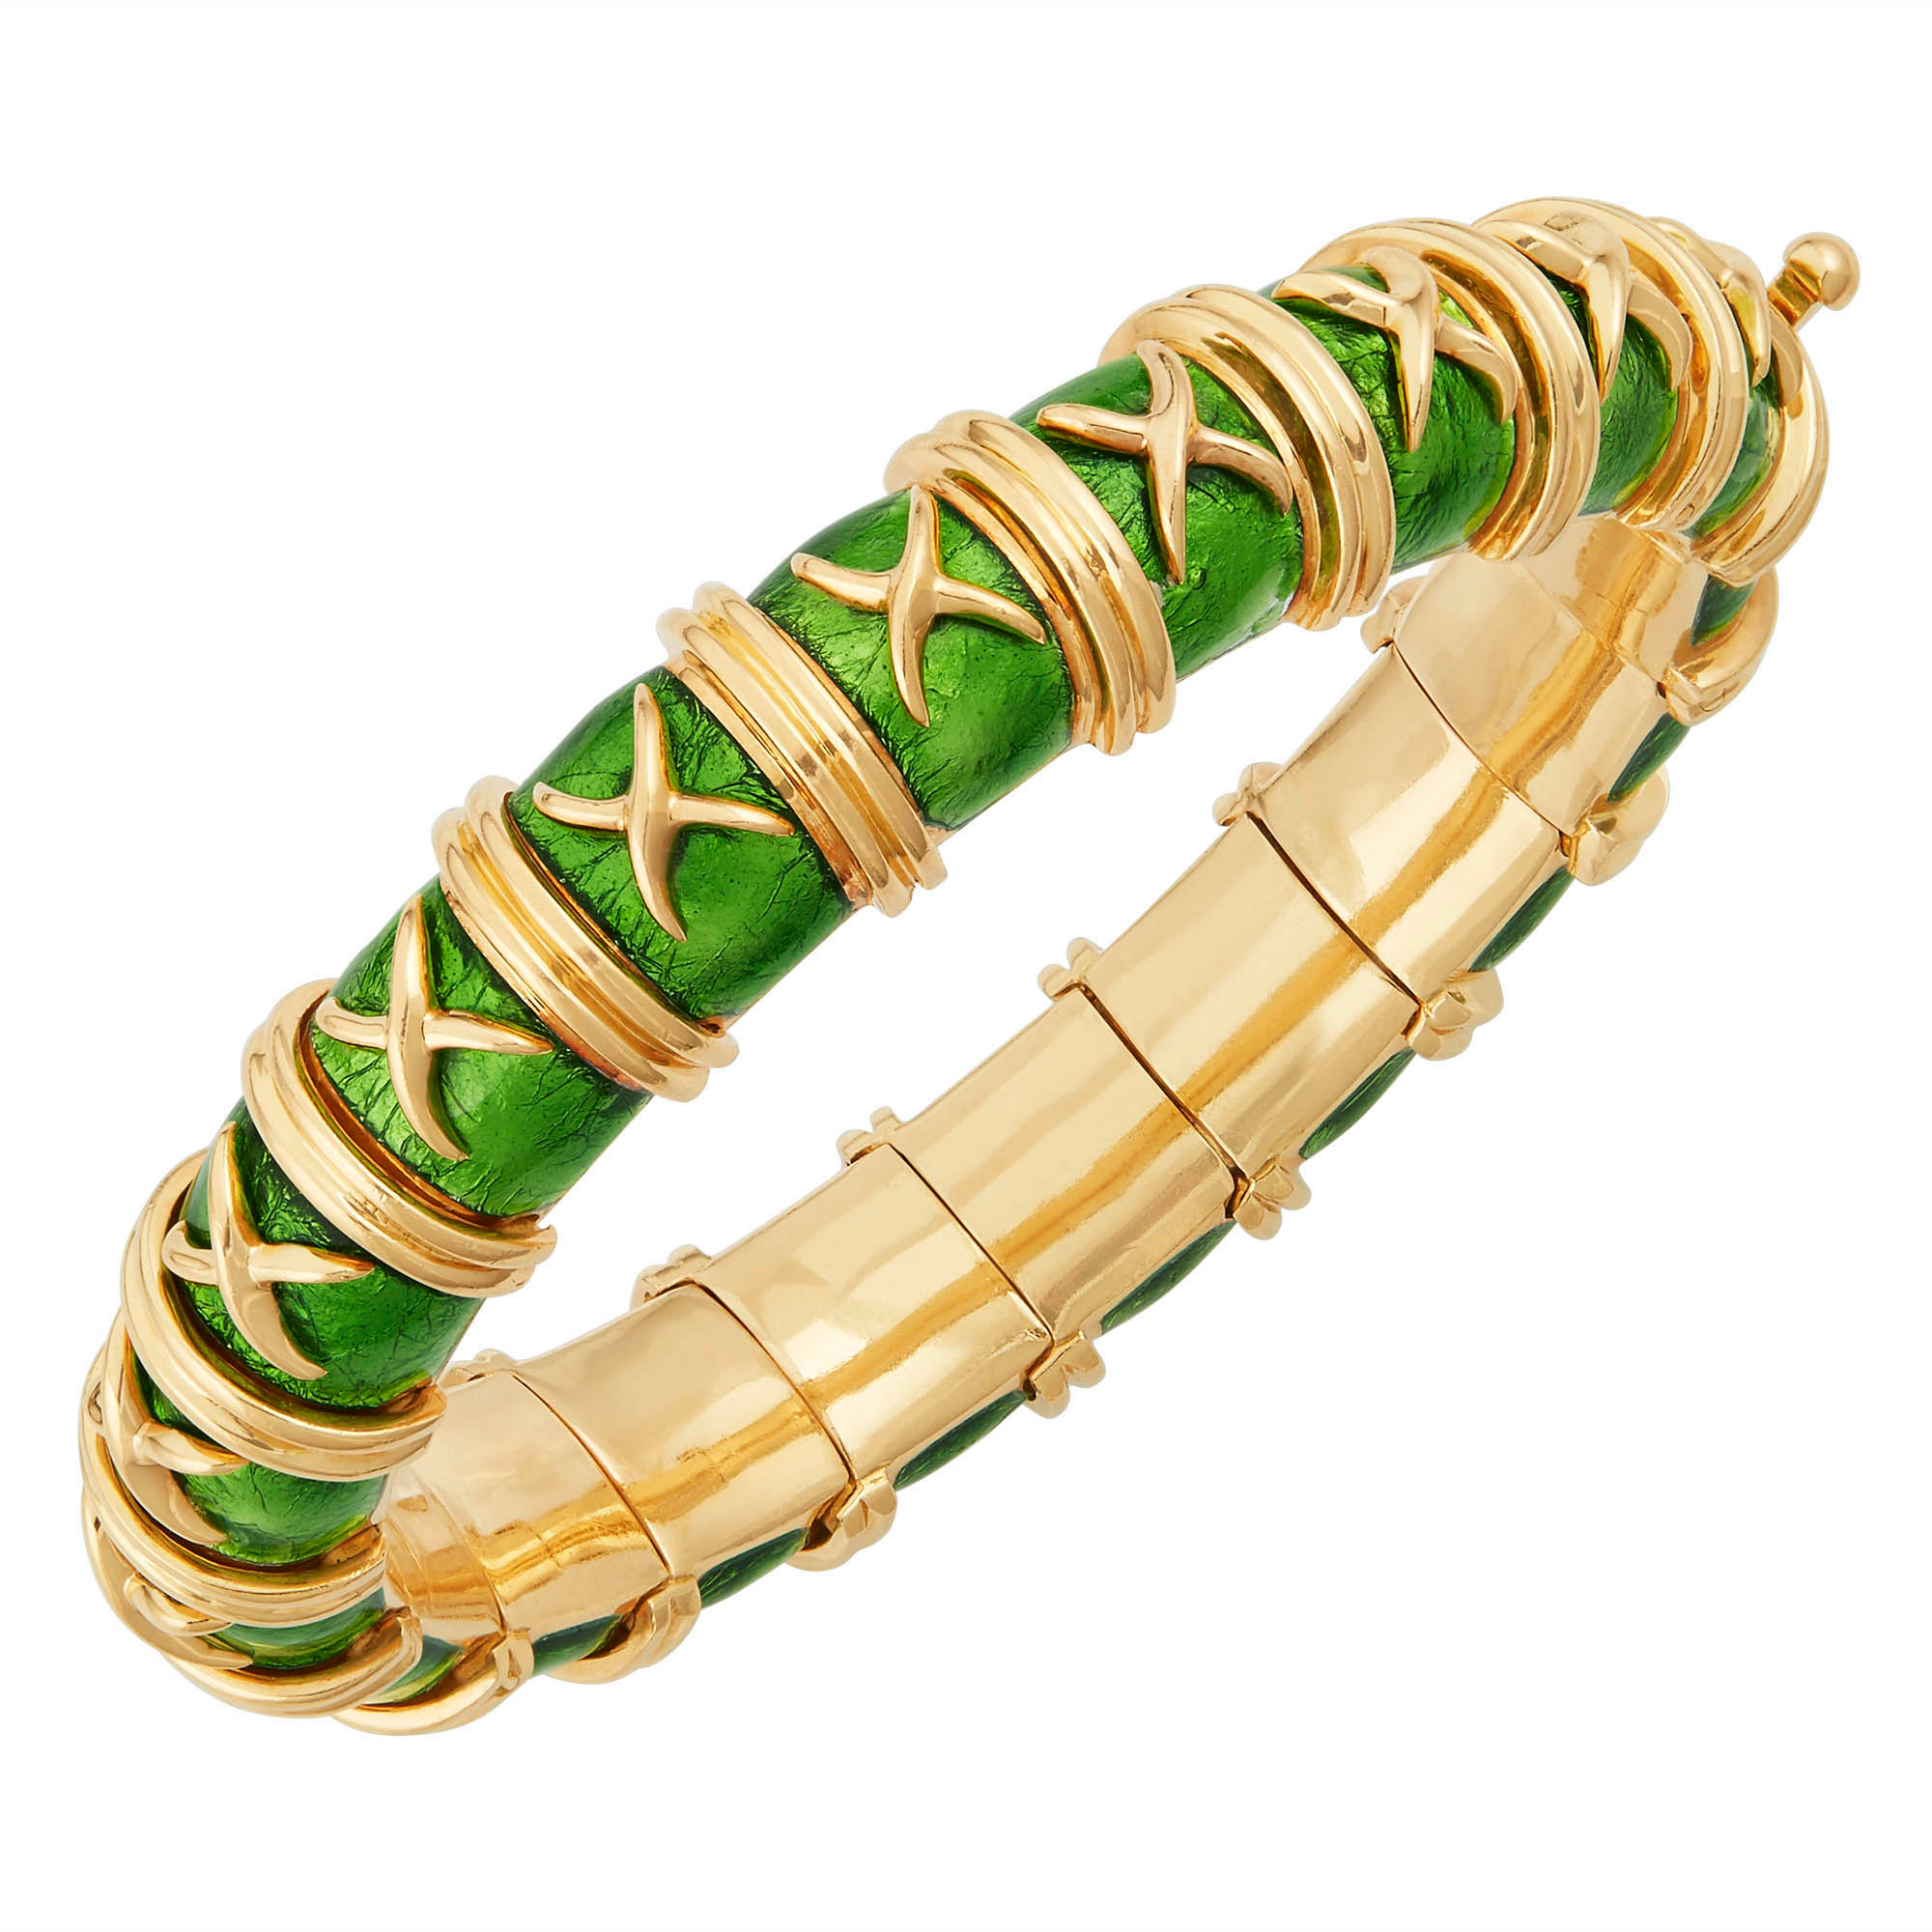 Lot image - Tiffany & Co., Schlumberger Gold and Green Enamel Croisillon Bangle Bracelet, France